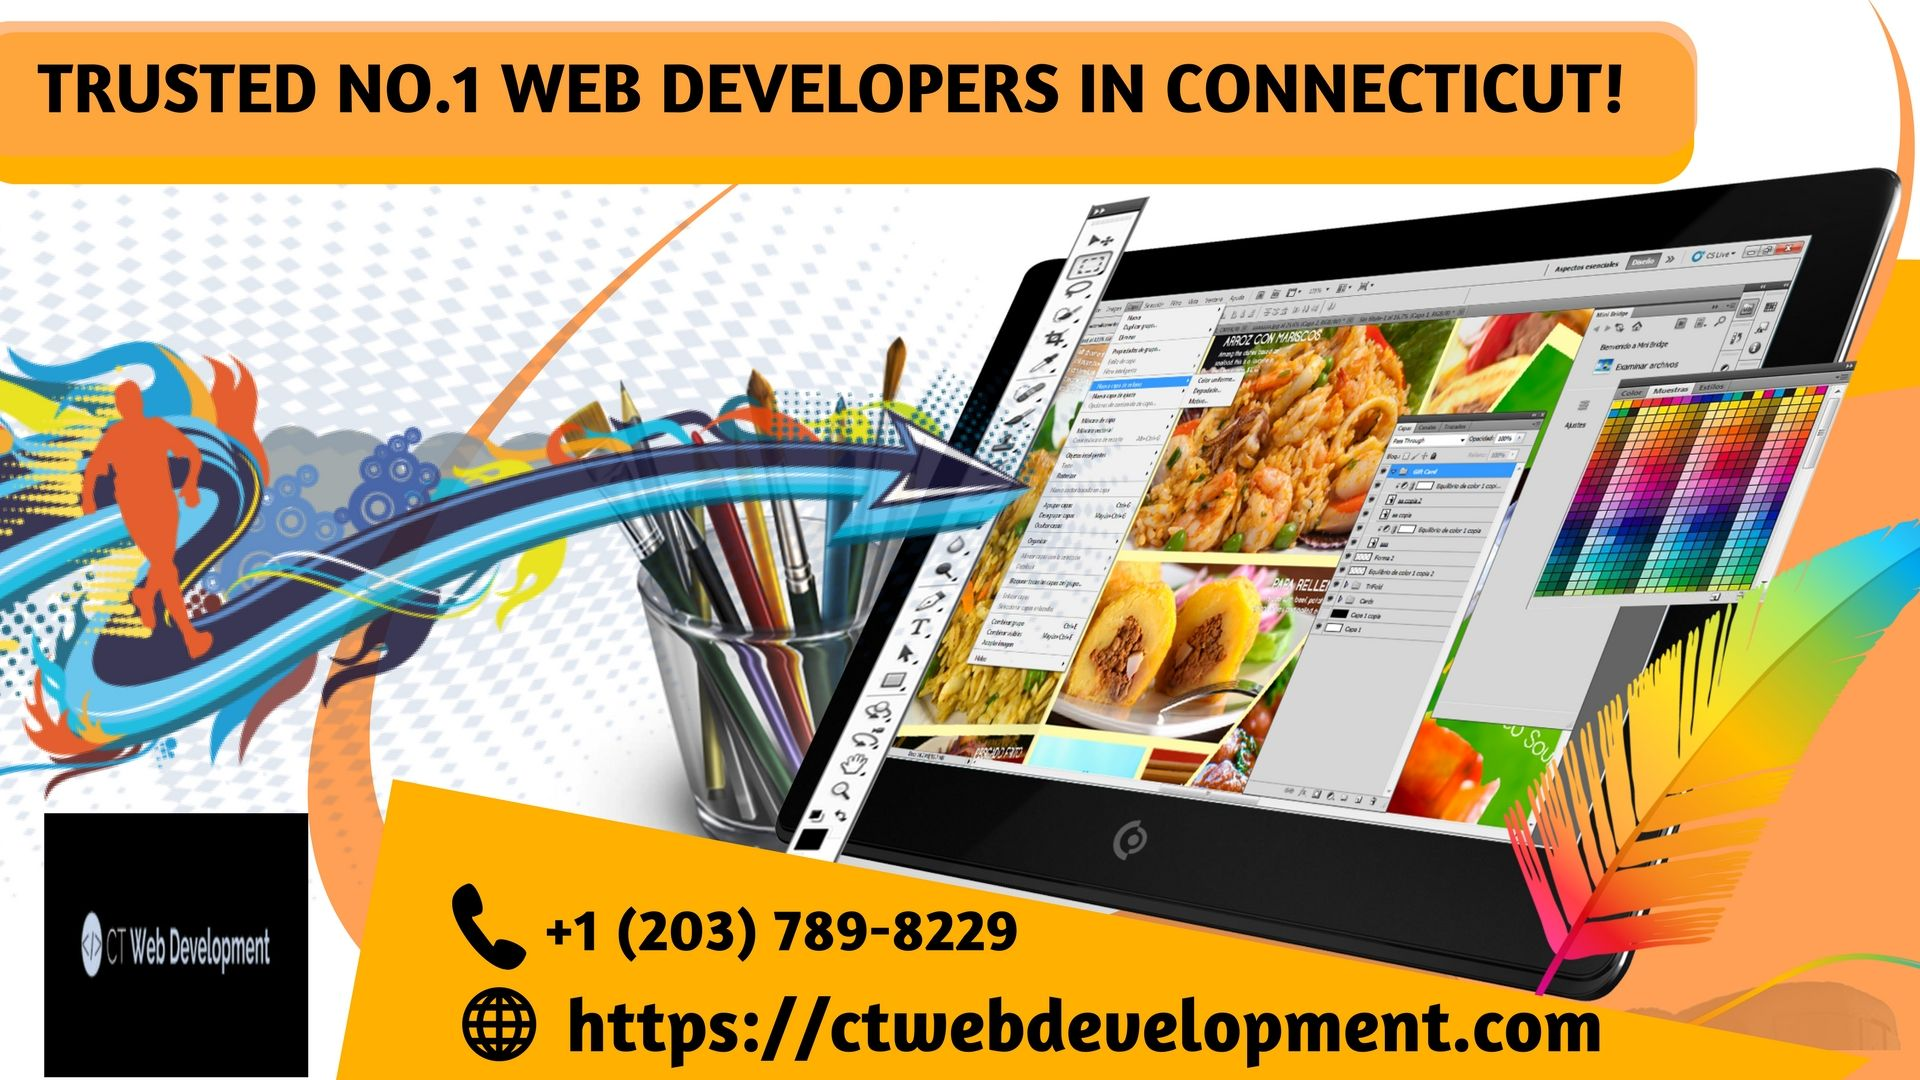 Are You Looking For Trusted Web Developers In Ct Ct Web Development Providing Perfect Web Solutions For All Web Development Online Marketing Agency Web Design